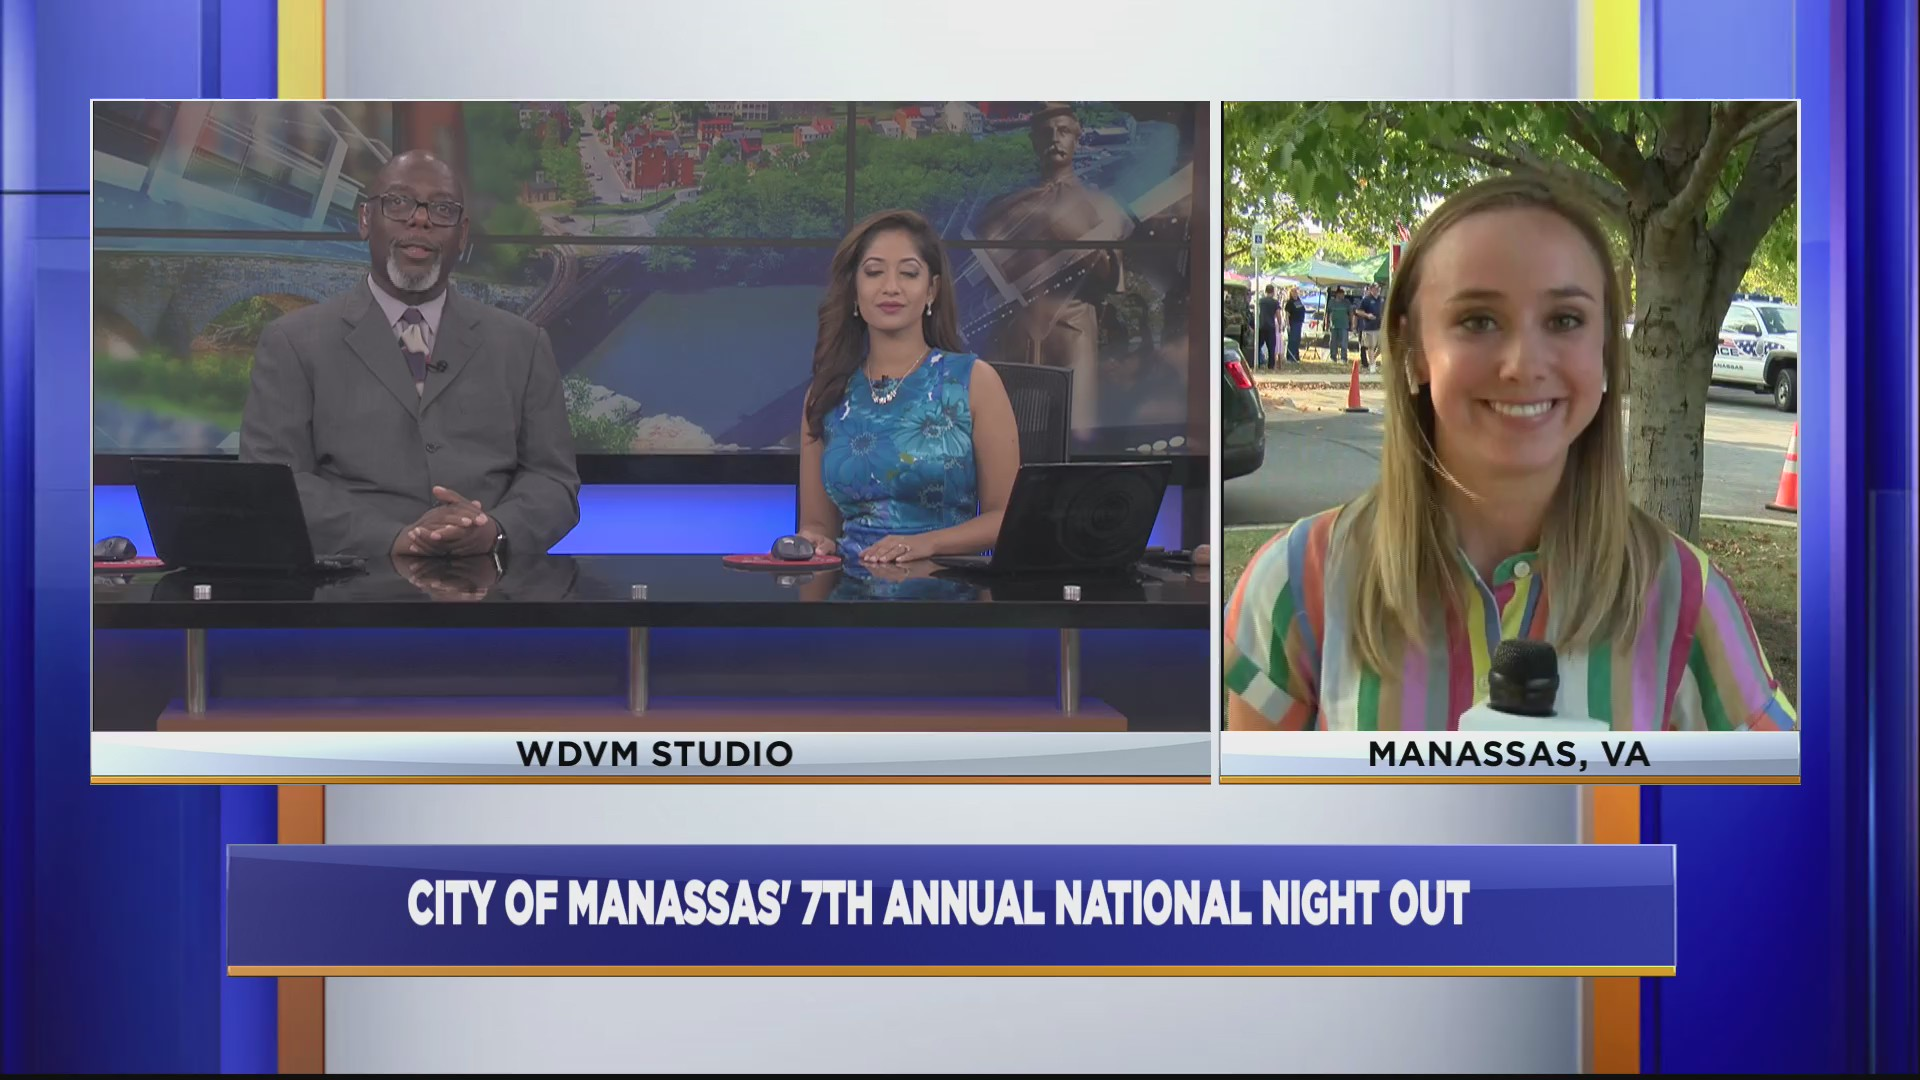 Tremendous National Night Out Live From Manassas Museum Wdvm 25 Interior Design Ideas Gentotryabchikinfo